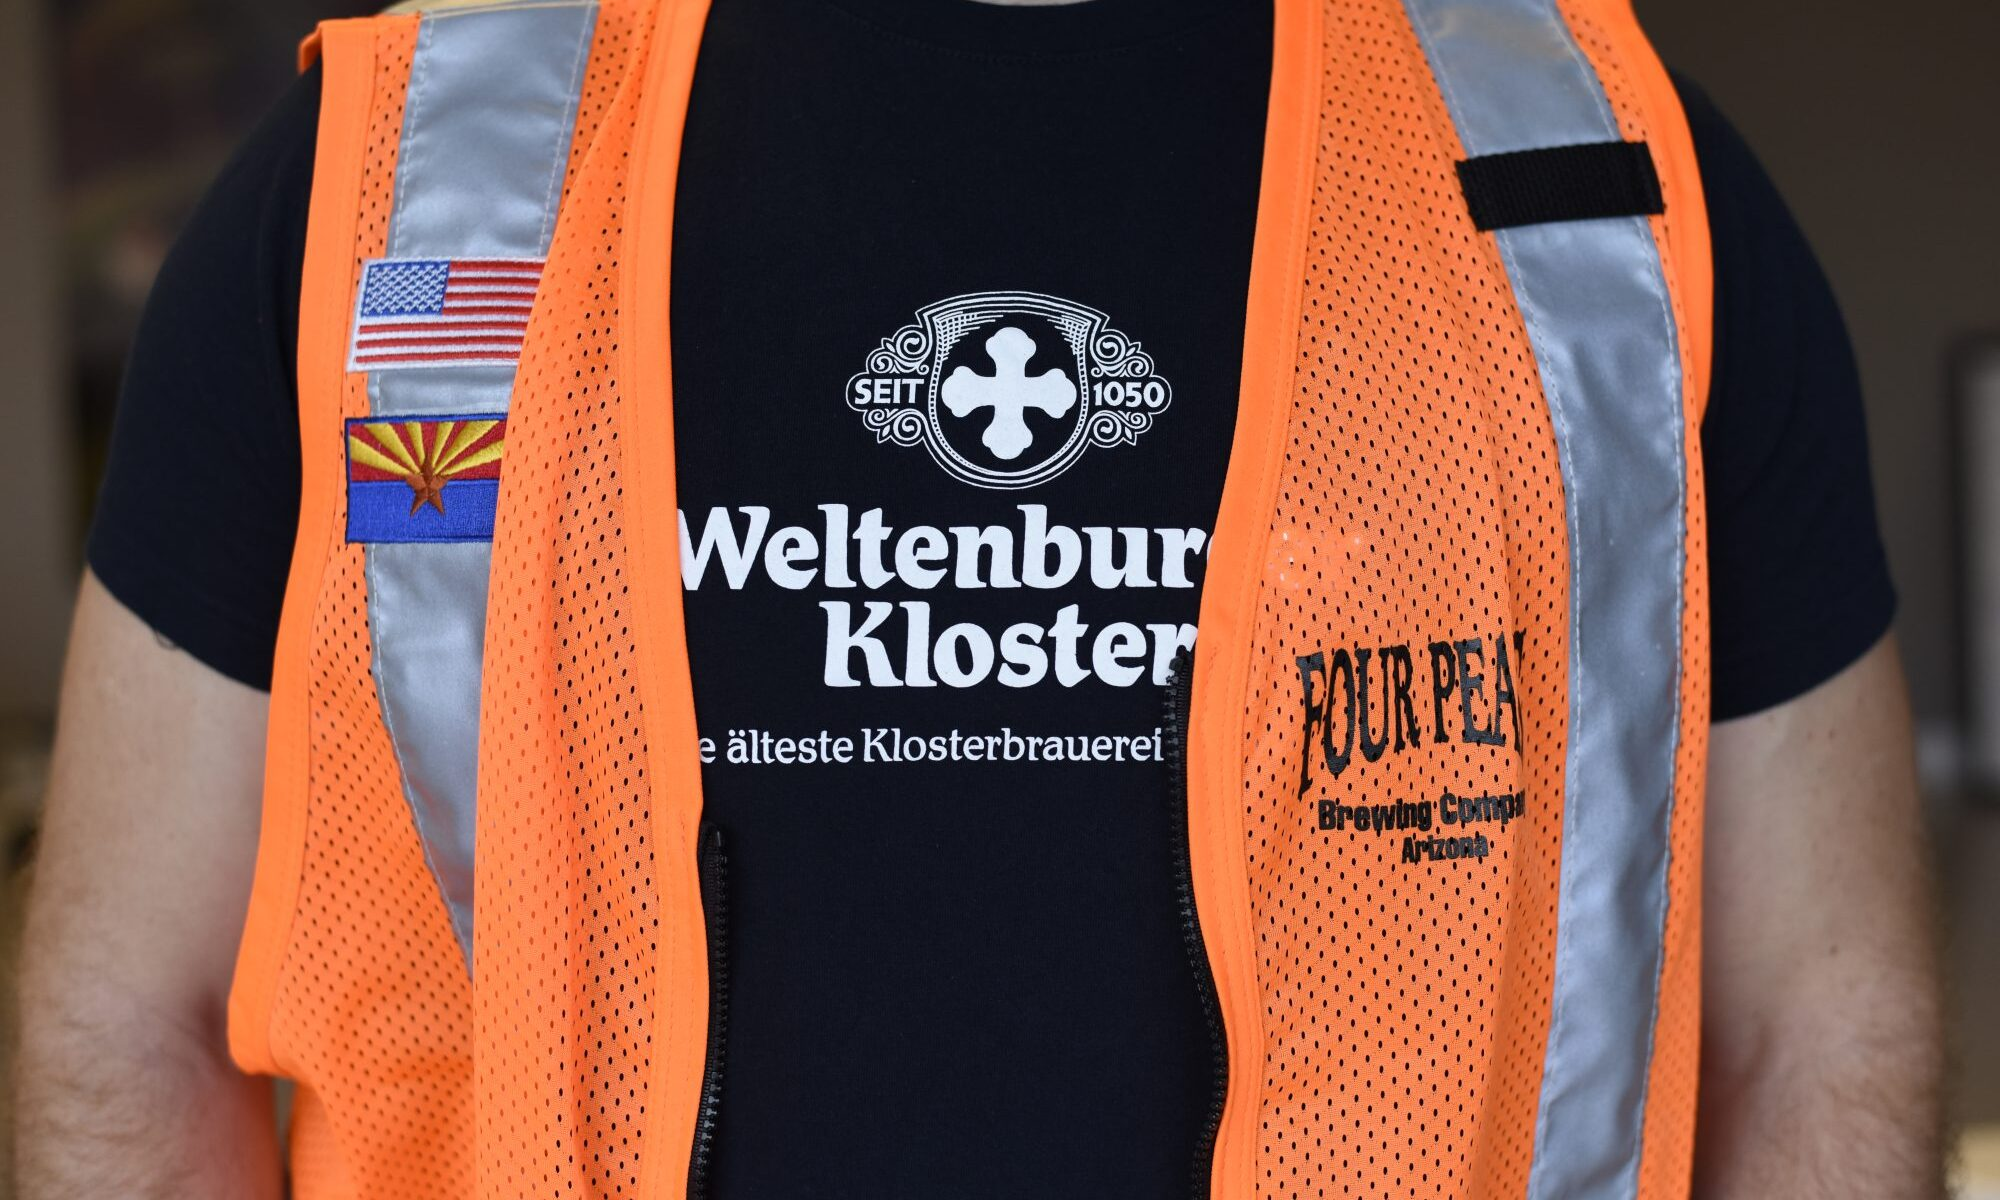 Weltenburger Four Peaks collaboration Freundschaft